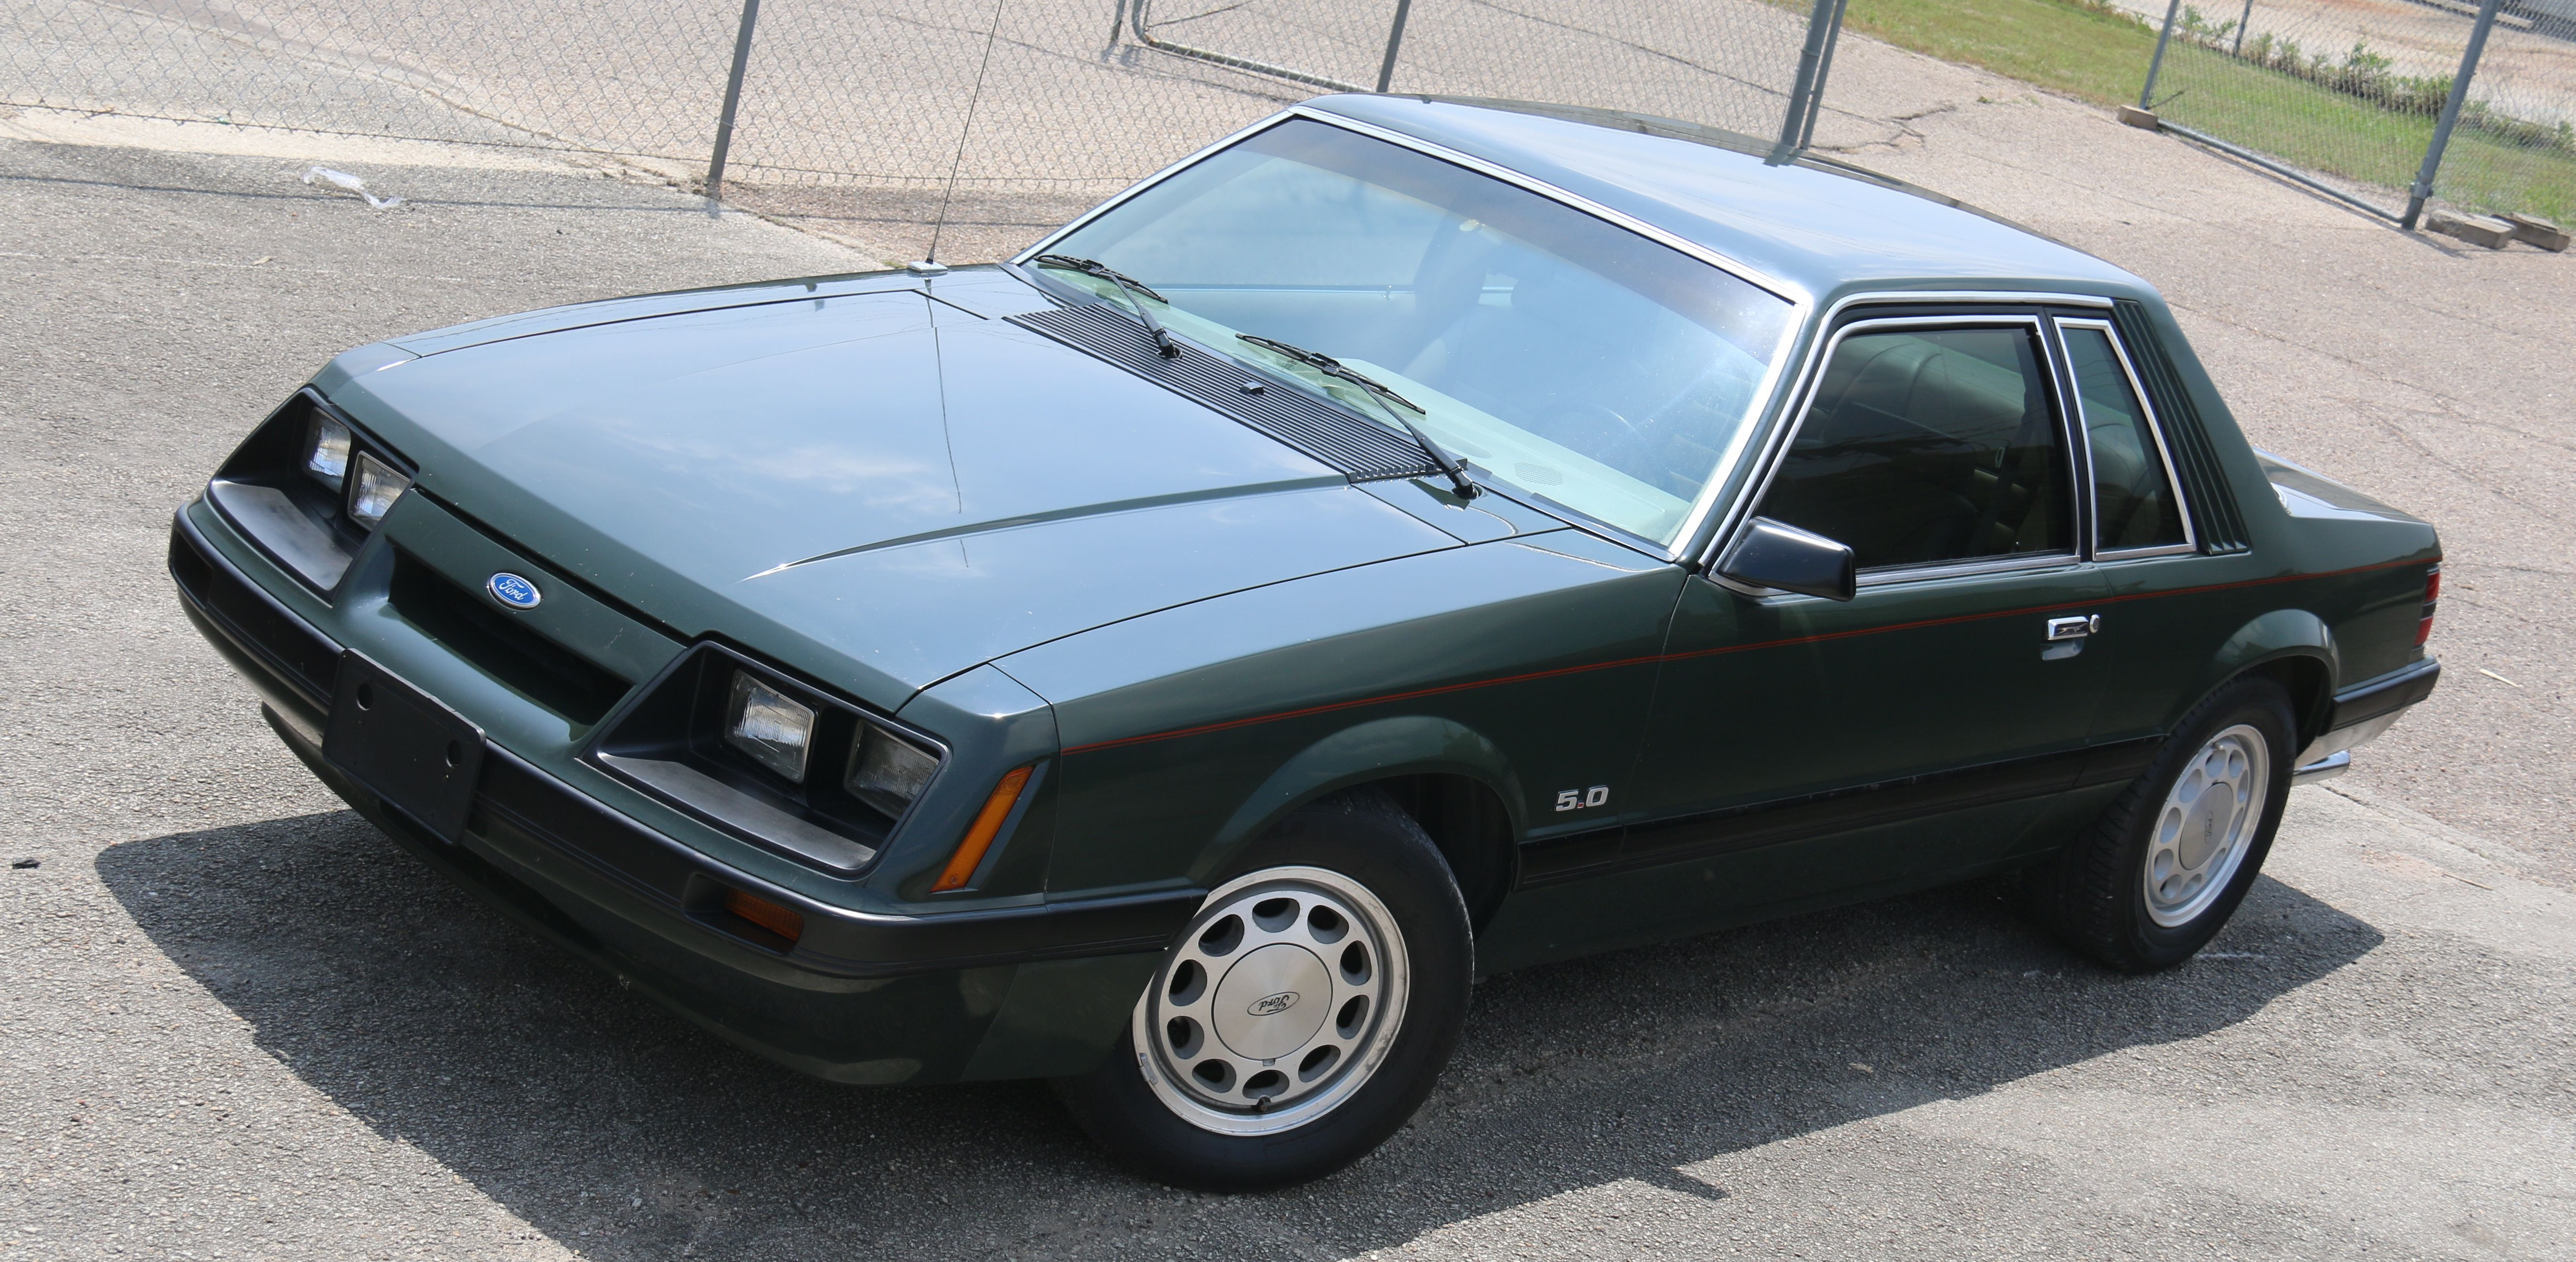 Best Fox Body Colors | 1979-93 Mustang - Best Fox Body Colors | 1979-93 Mustang